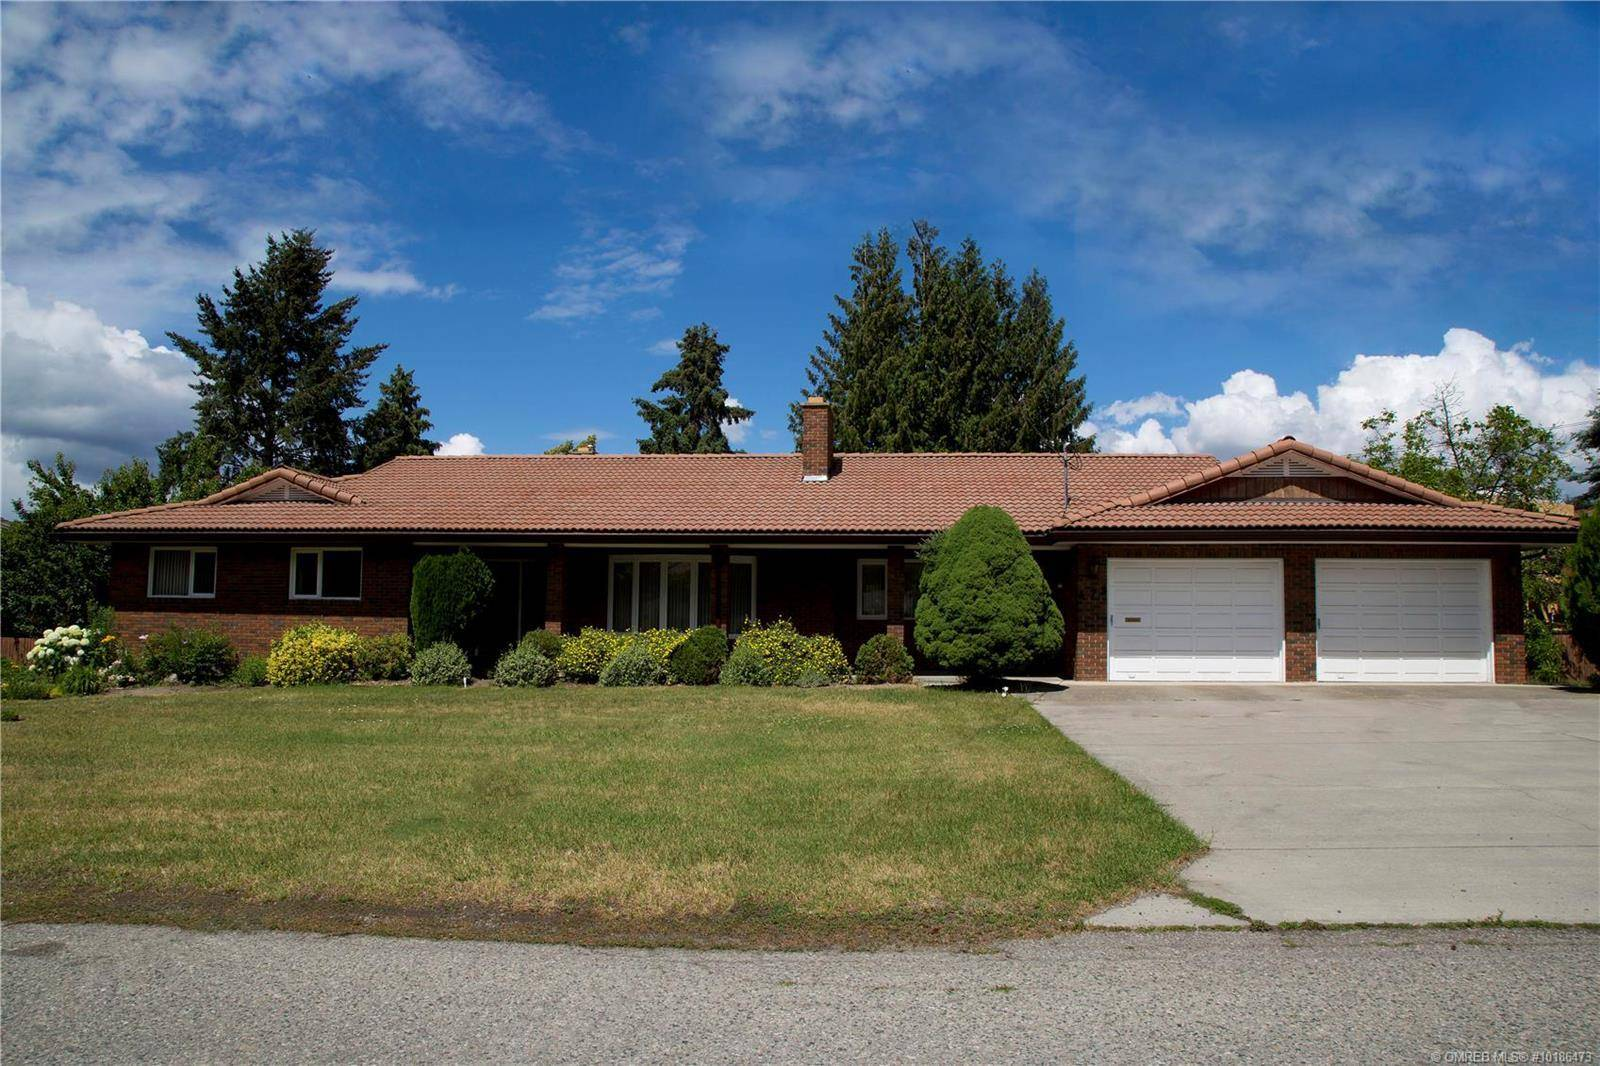 House for sale at 472 Knowles Rd Kelowna, British Columbia - MLS: 10186473